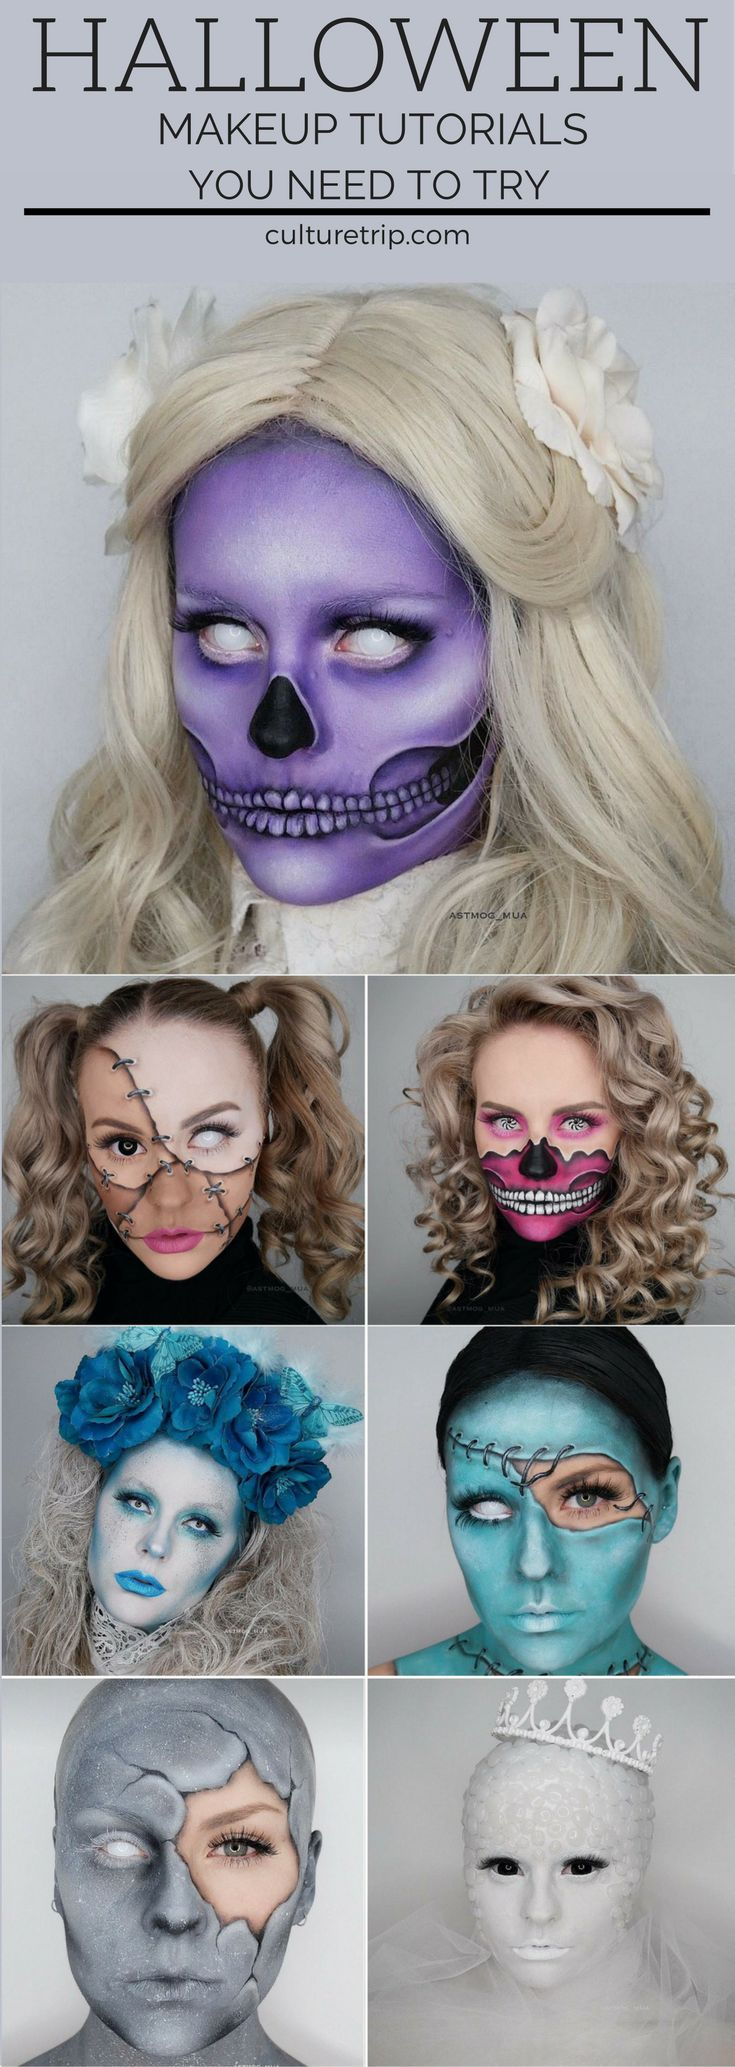 Stop What You're Doing and Check Out These Scary AH Make Up Tutorials